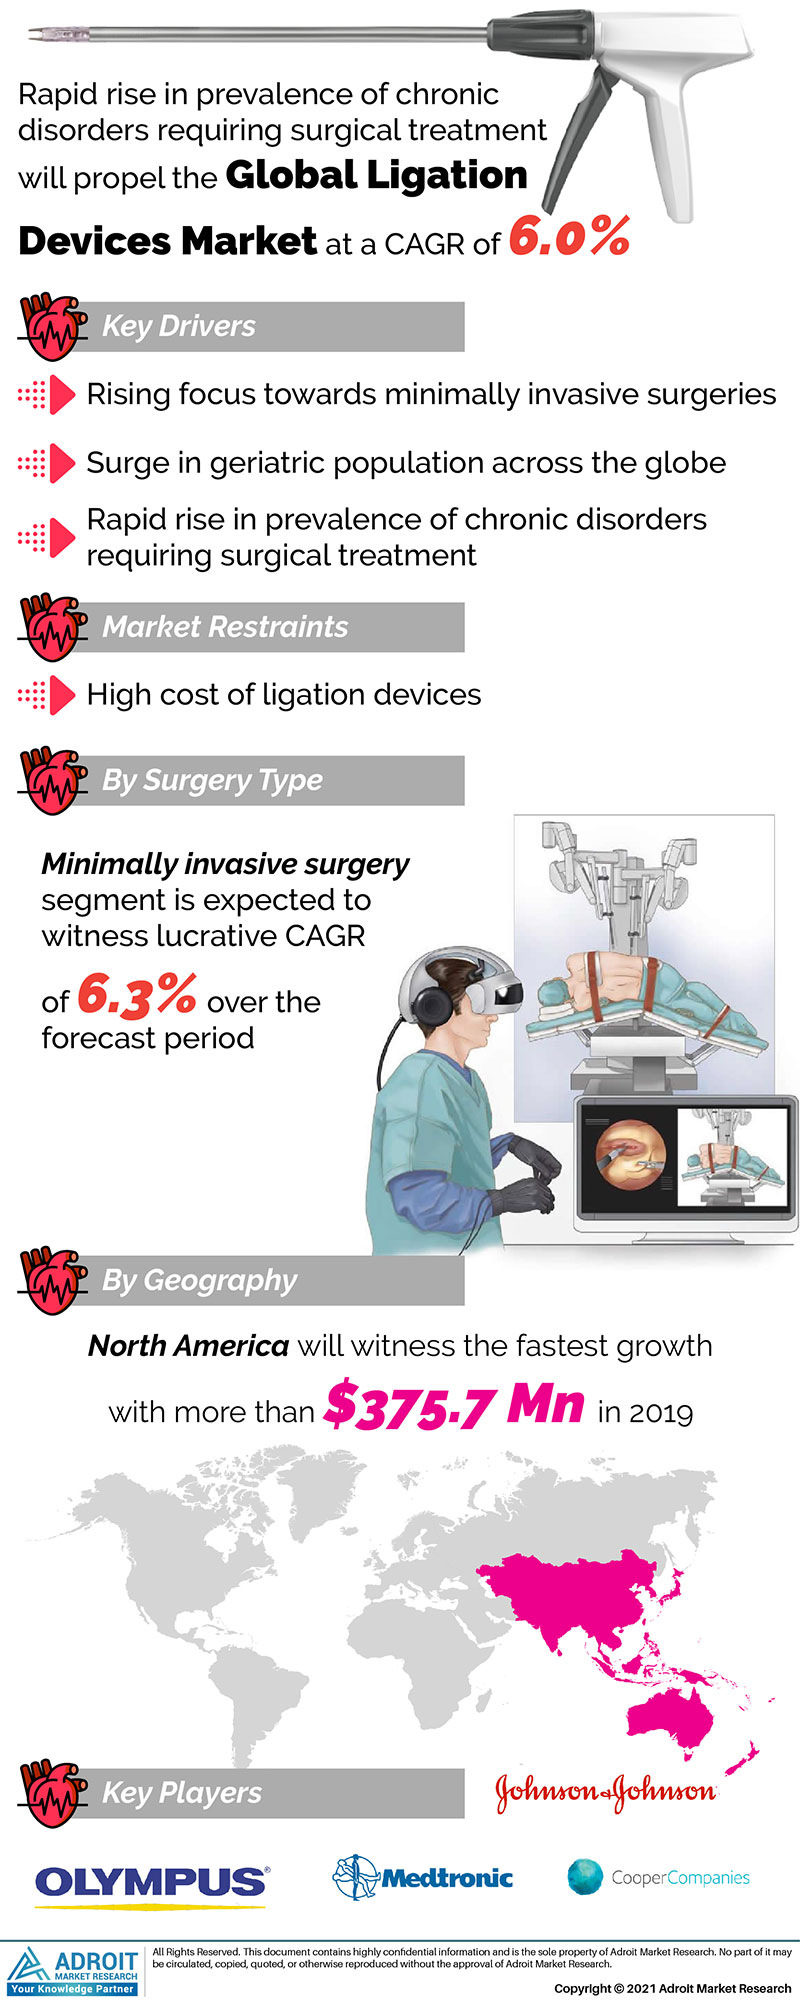 Ligation Devices Market Size 2017 By Application, Product, Region and Forecast 2019 to 2025